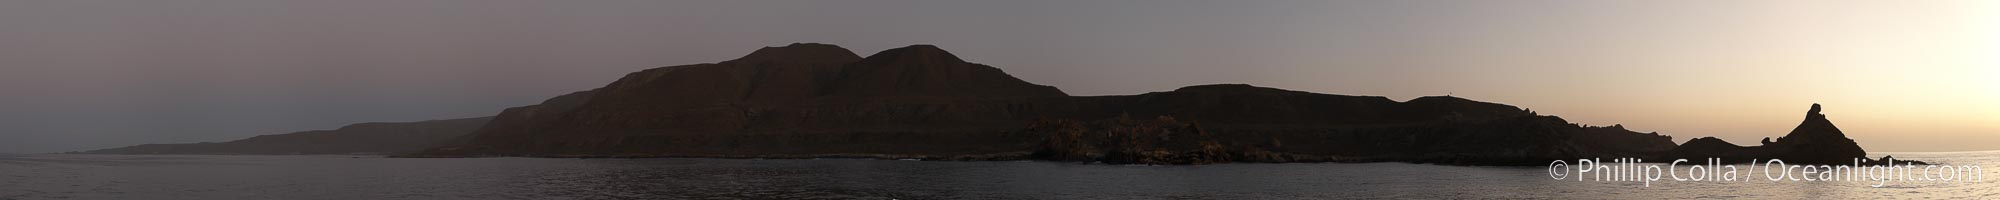 Panoramic photo of San Clemente Island, southern end from China Hat Point (aka, Balanced Rock, right) along the length of Pyramid Cove, sunrise